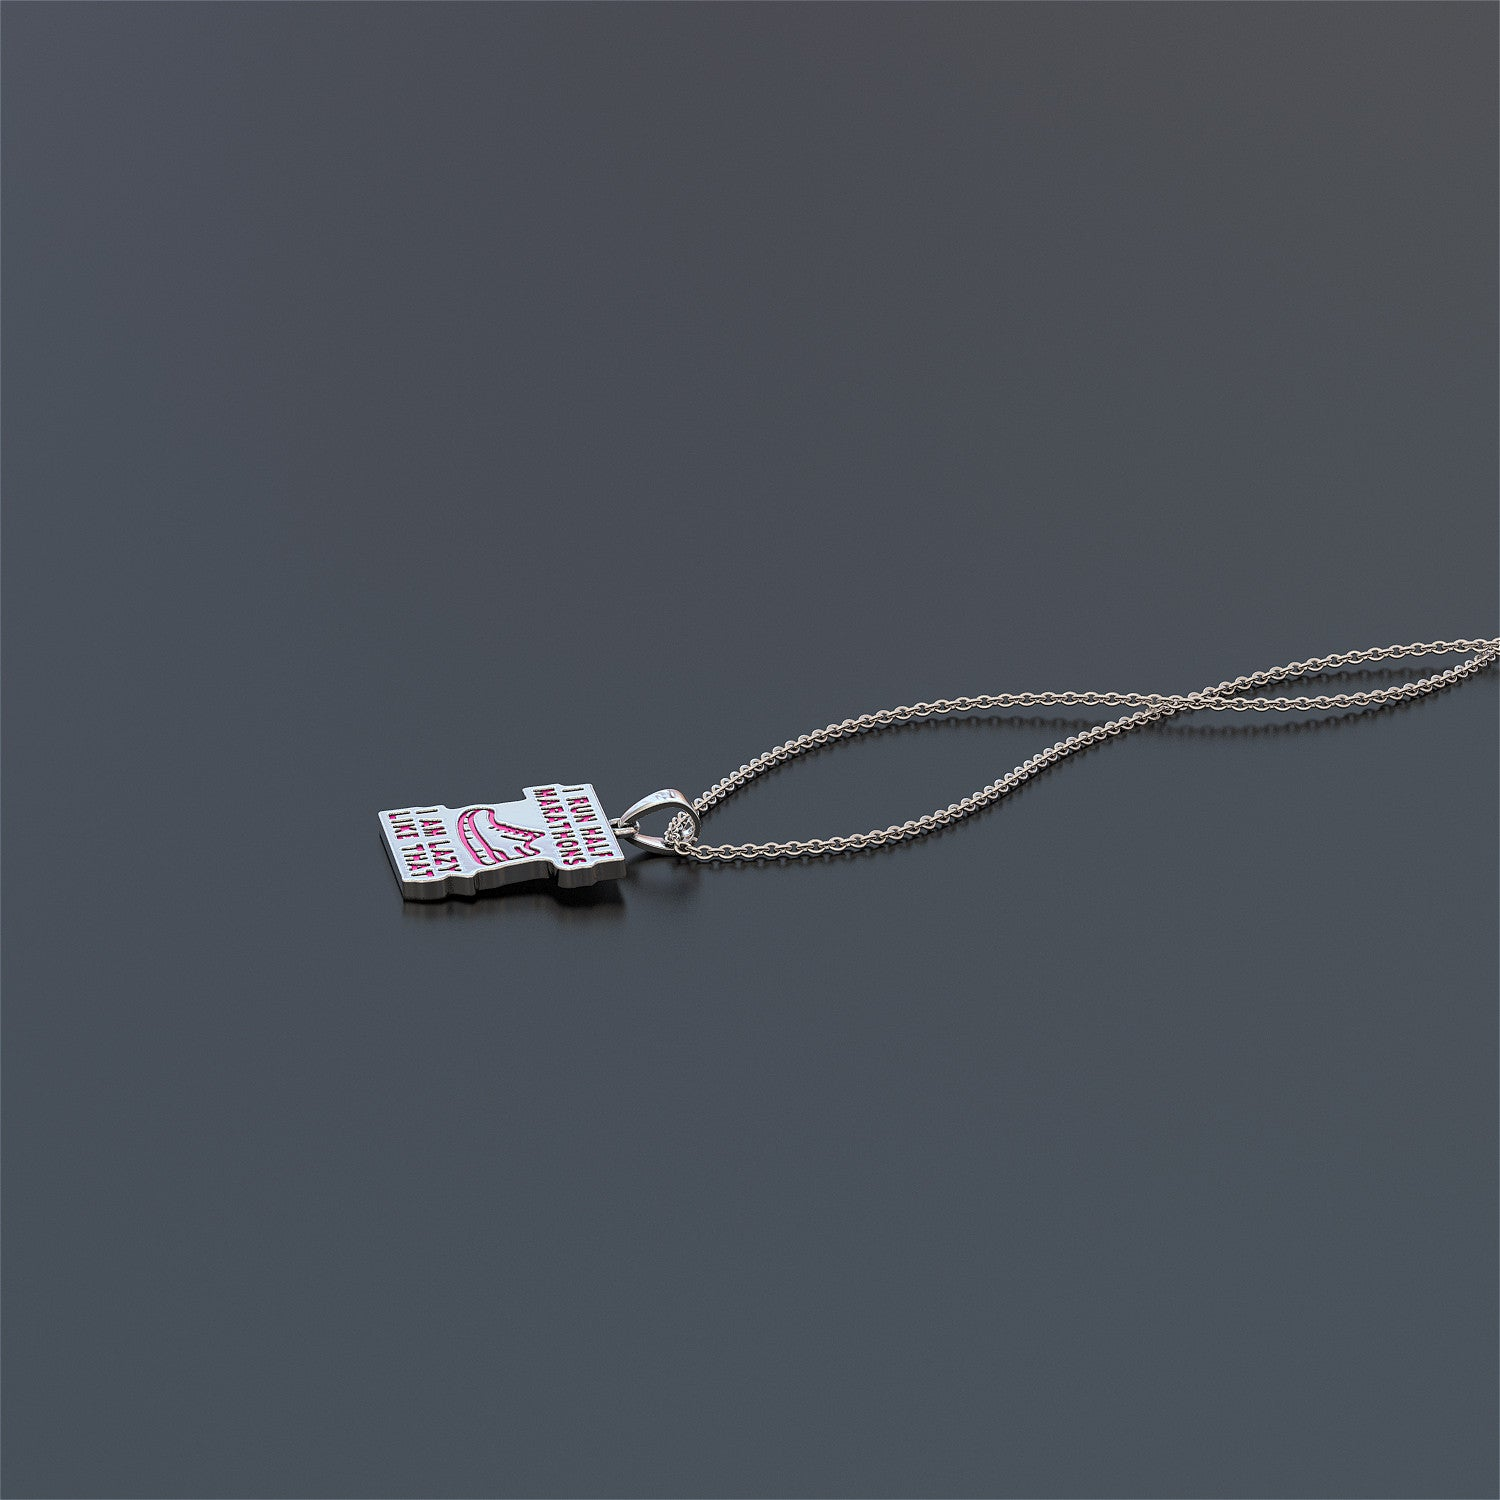 Half Marathon Runner Necklace